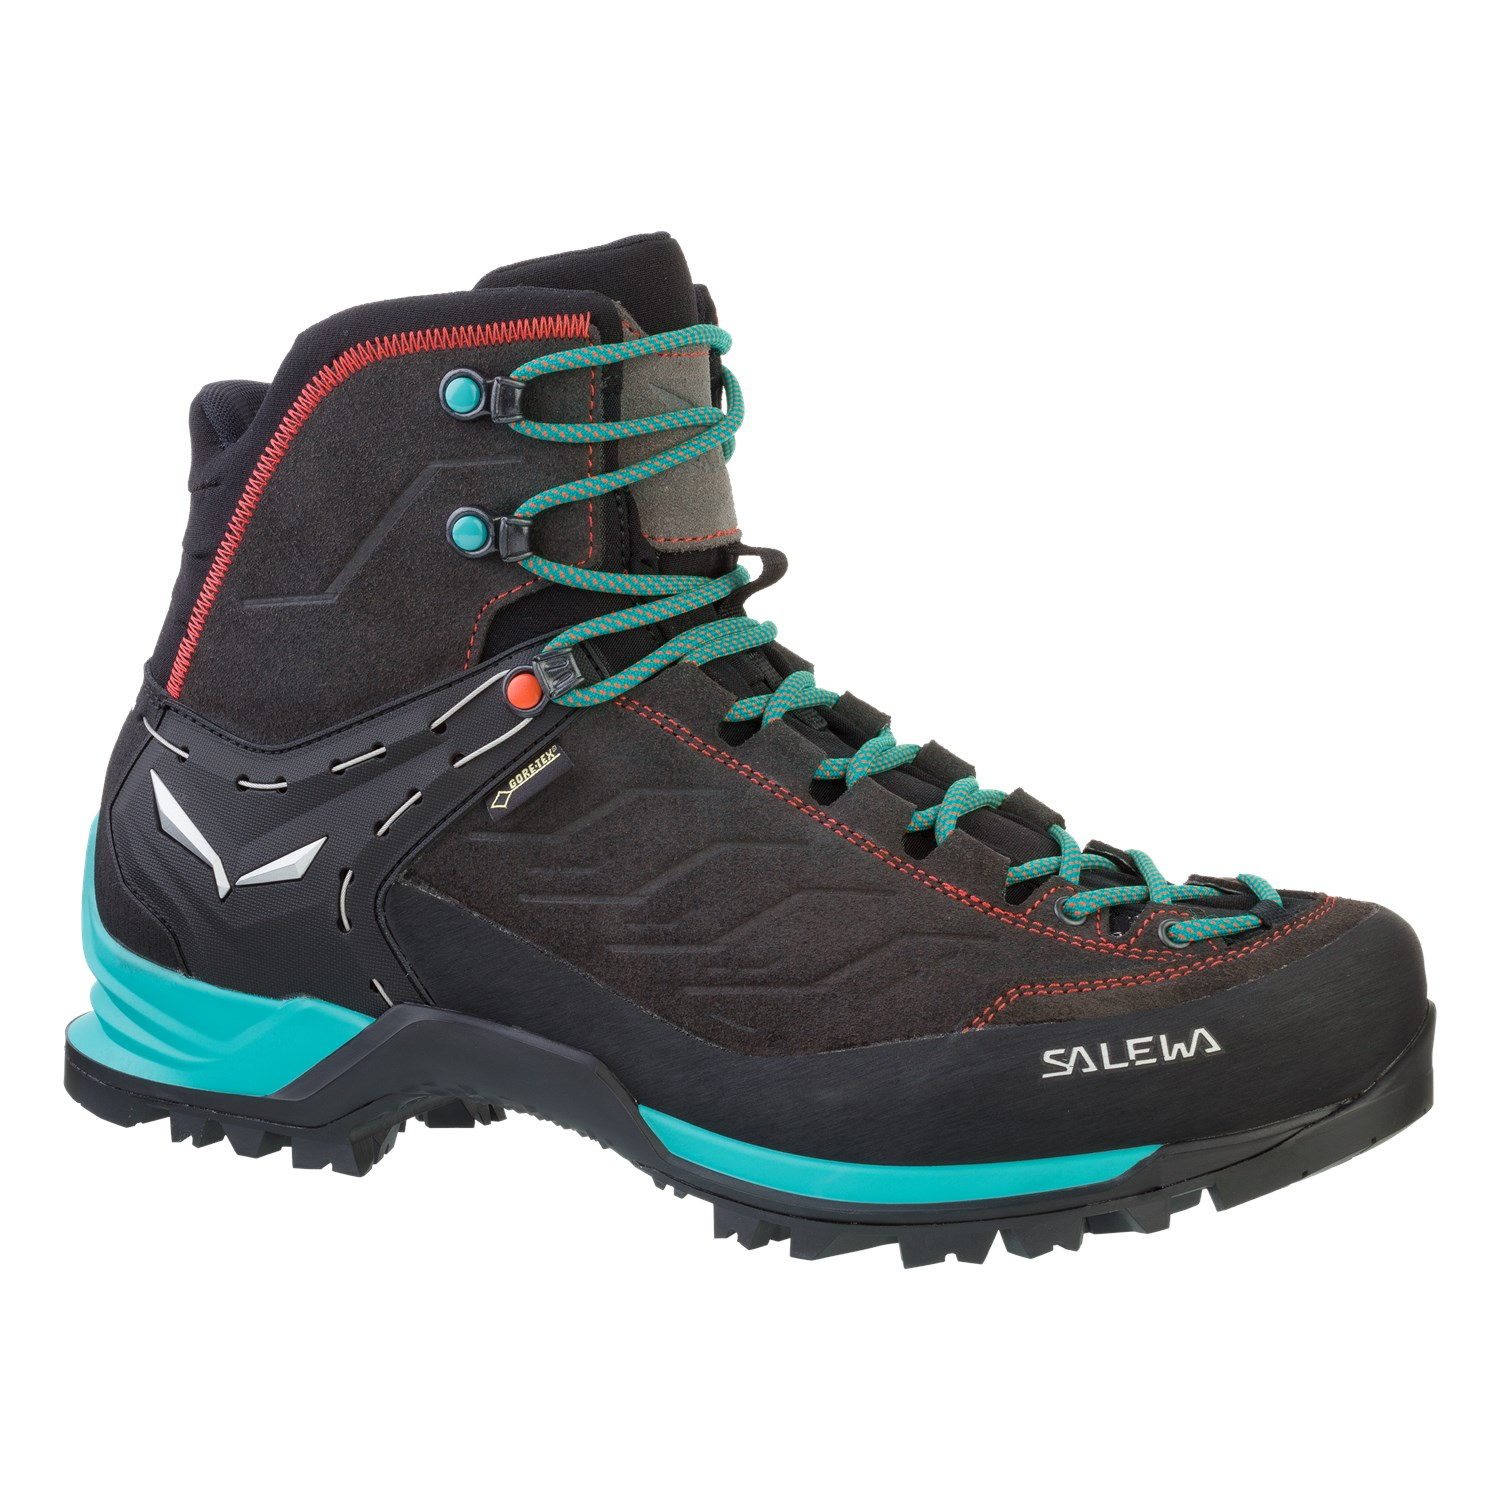 1ac80d878fd Hiking Boots & Shoes for Women: Best Selection! | Salewa® USA